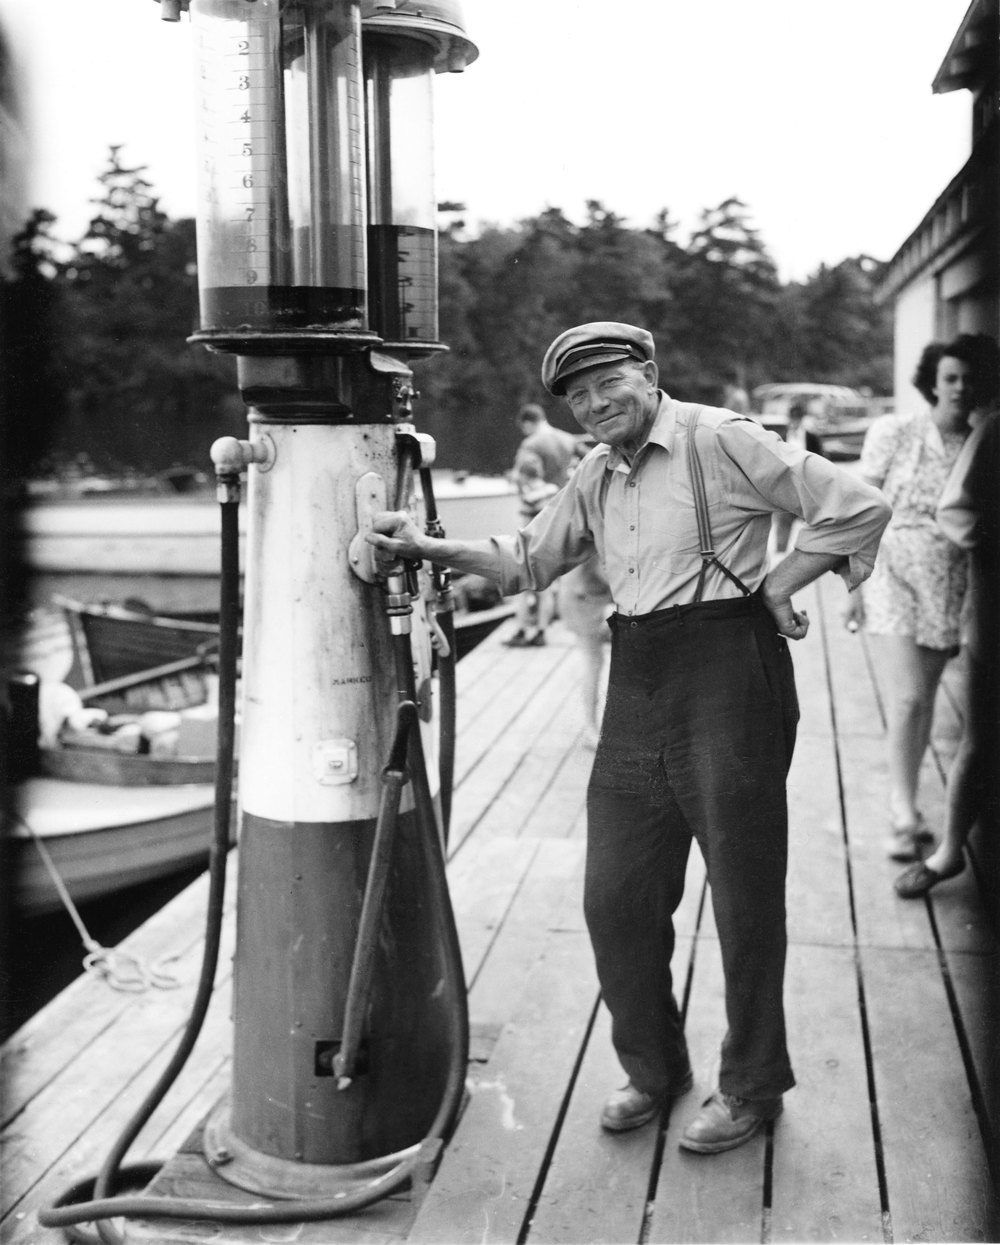 Bert Bruckland ruled the dock with a firm, genial hand. He was, for many, the personification of an Ojibway summer.